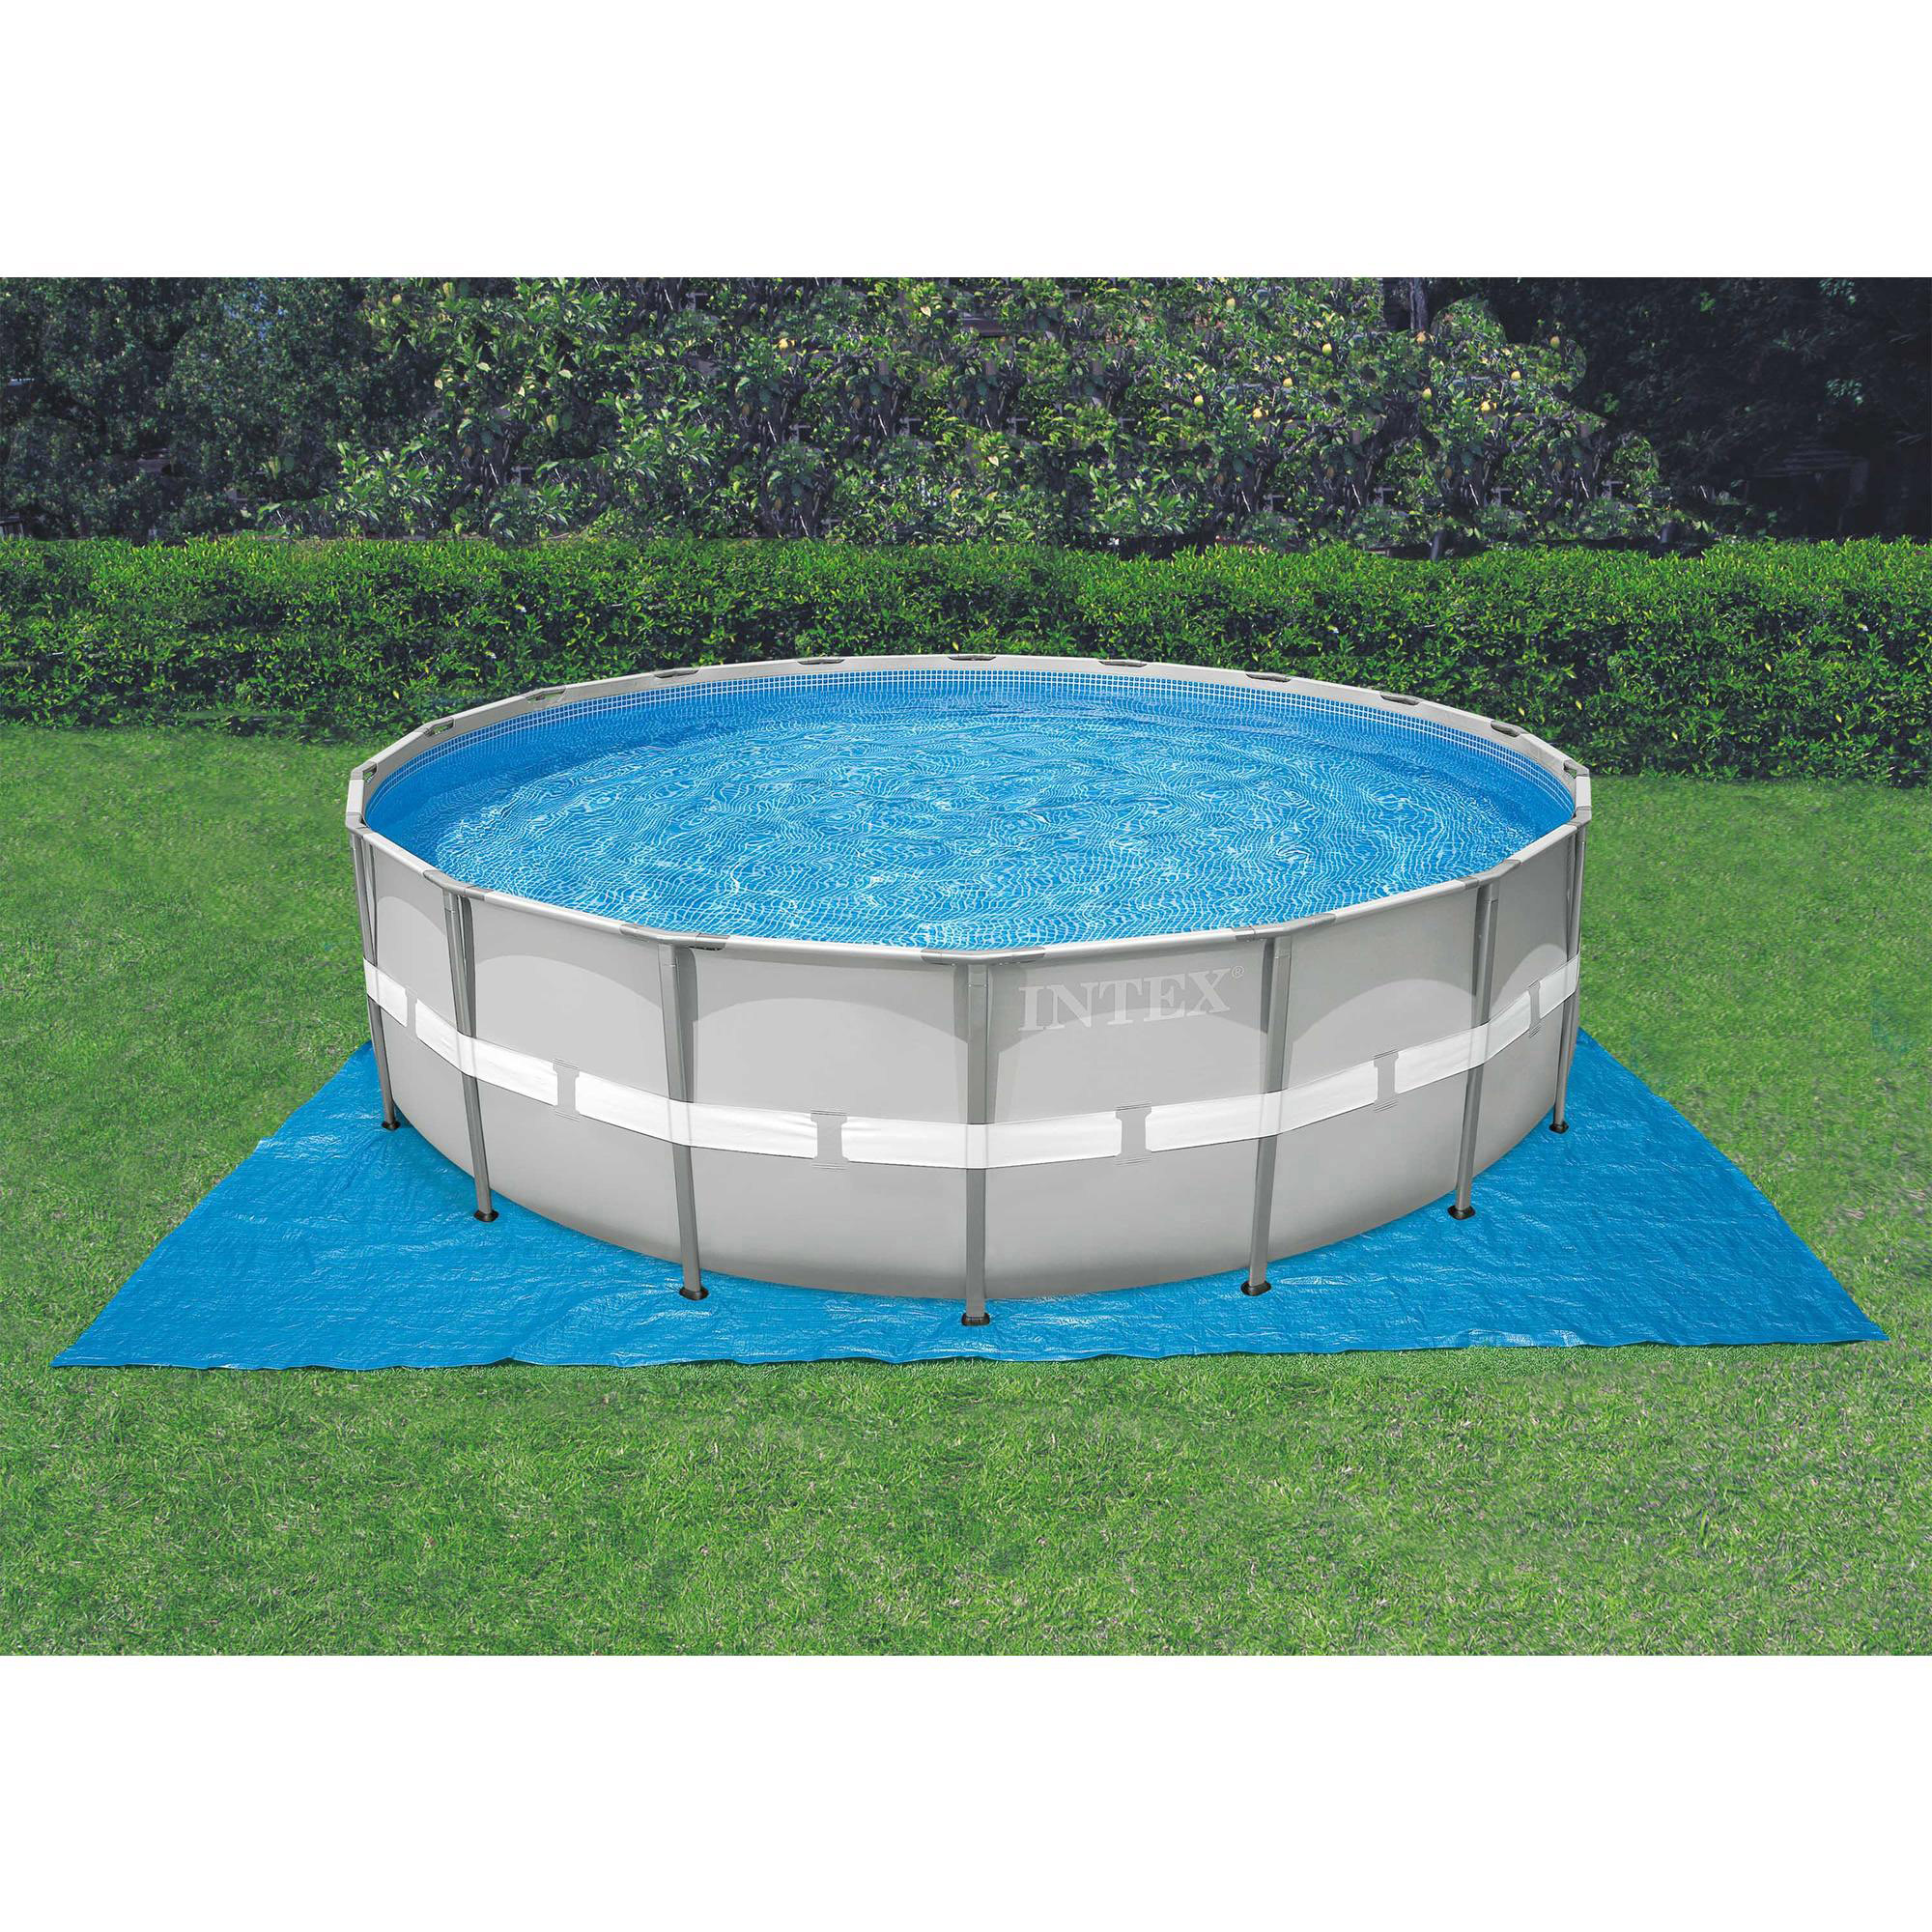 intex 24 39 x 52 ultra frame above ground swimming pool set with filter pump ebay. Black Bedroom Furniture Sets. Home Design Ideas